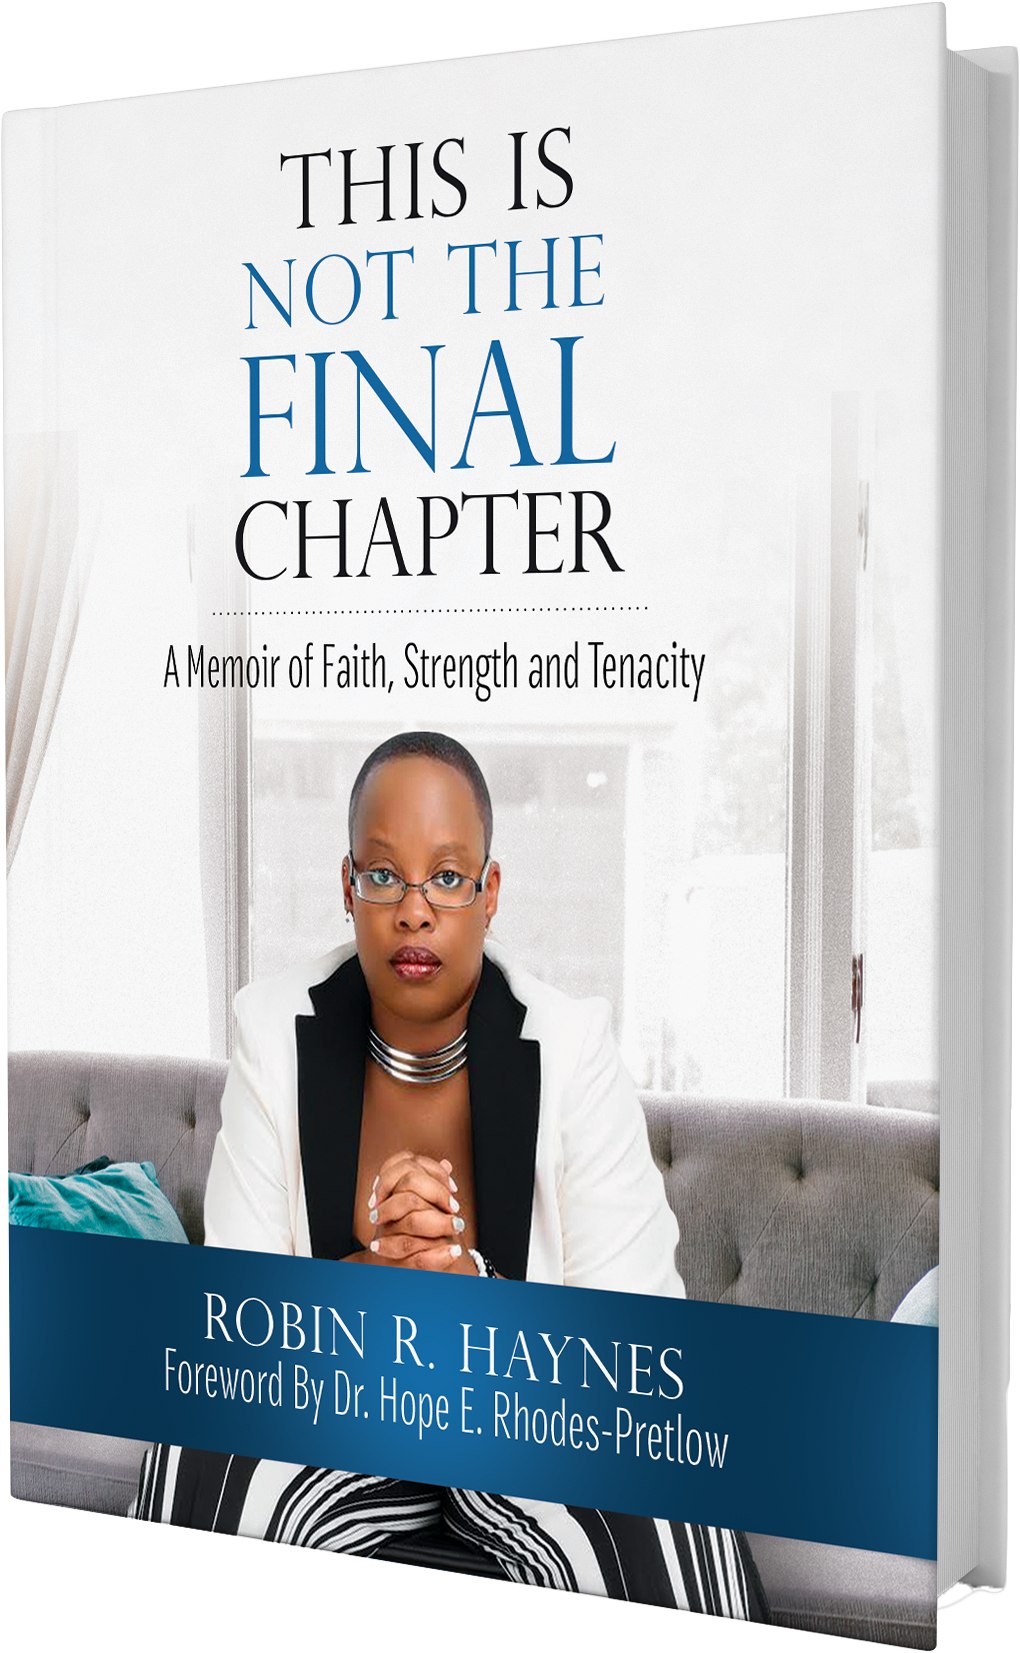 Financial Strategist and Bestselling Author Releases Inspirational Book to Encourage Moving Forward